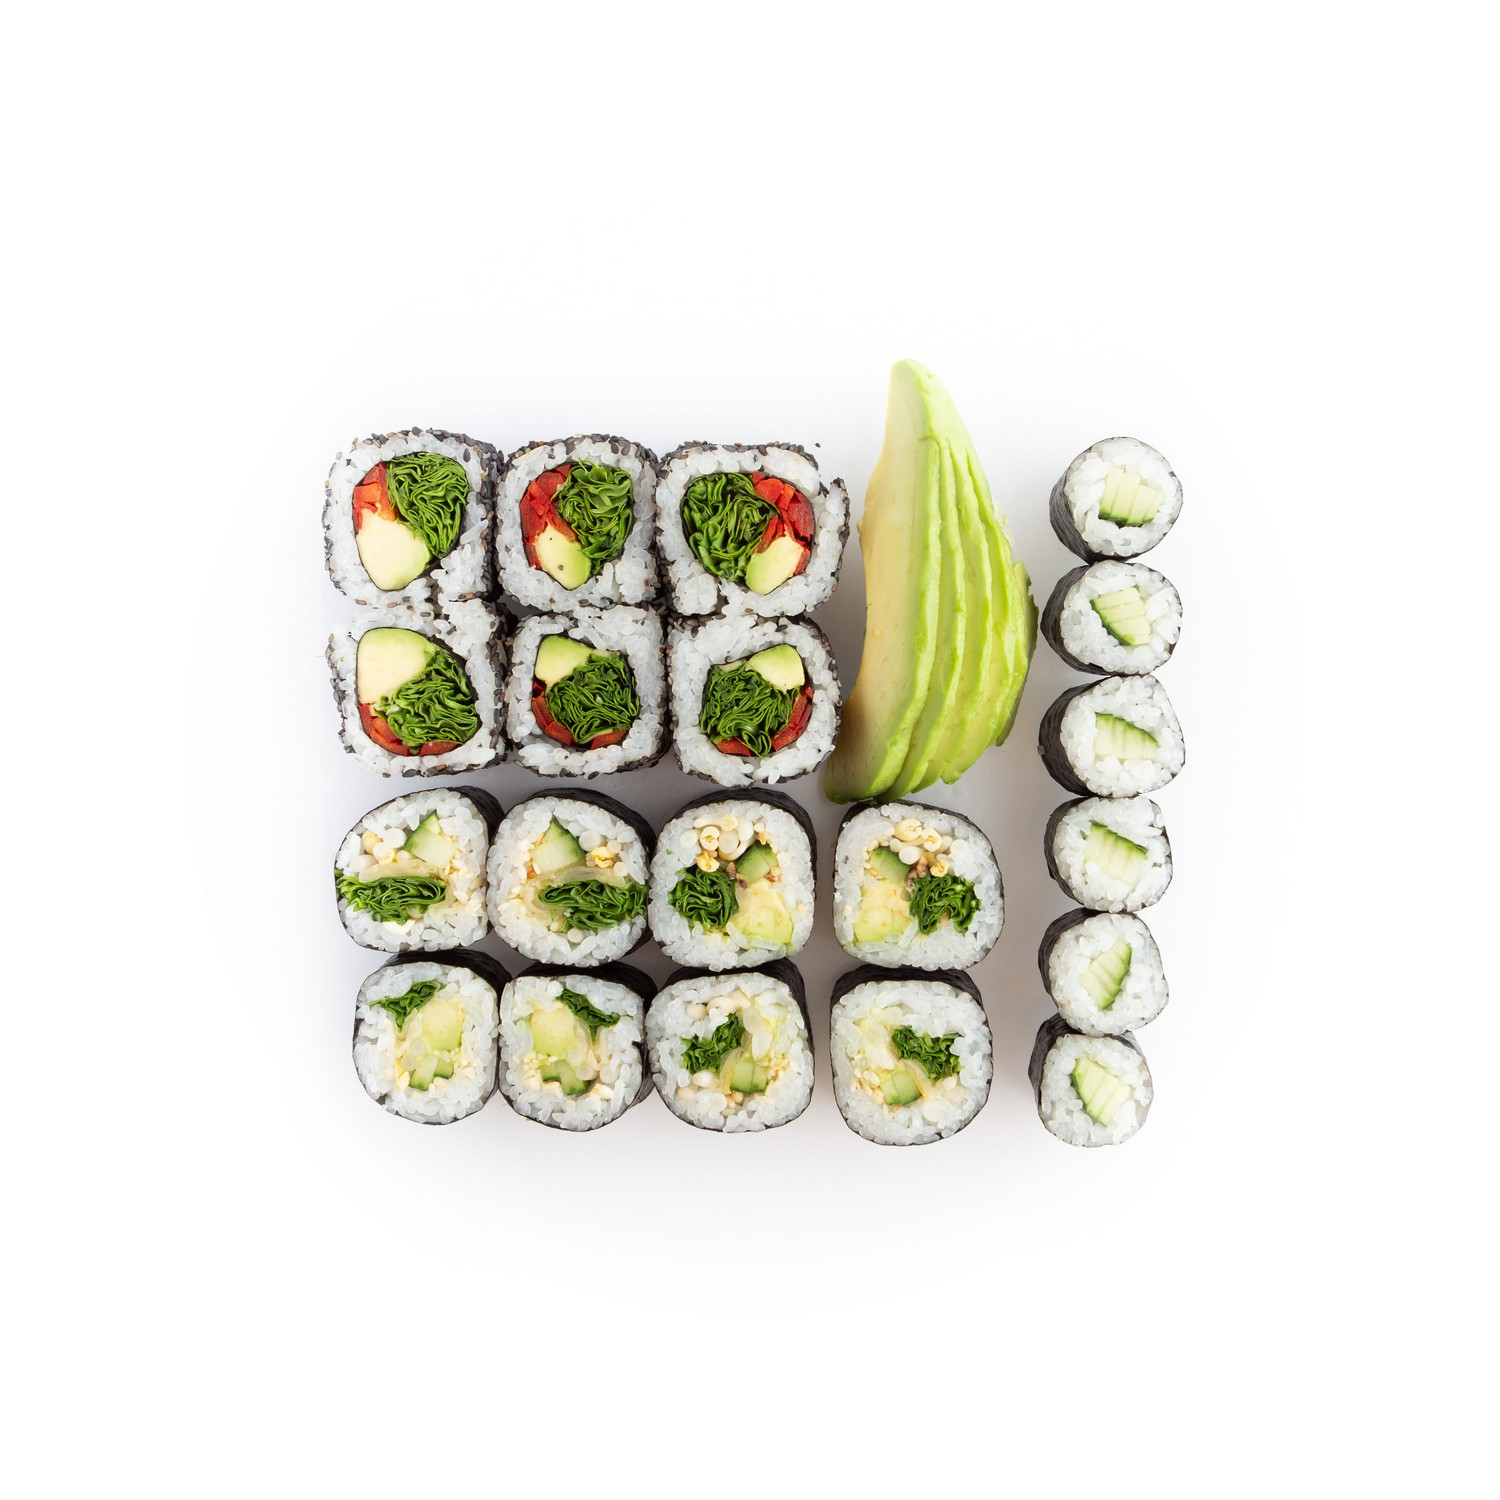 Sushiset green lover - sushi delivery Nitra